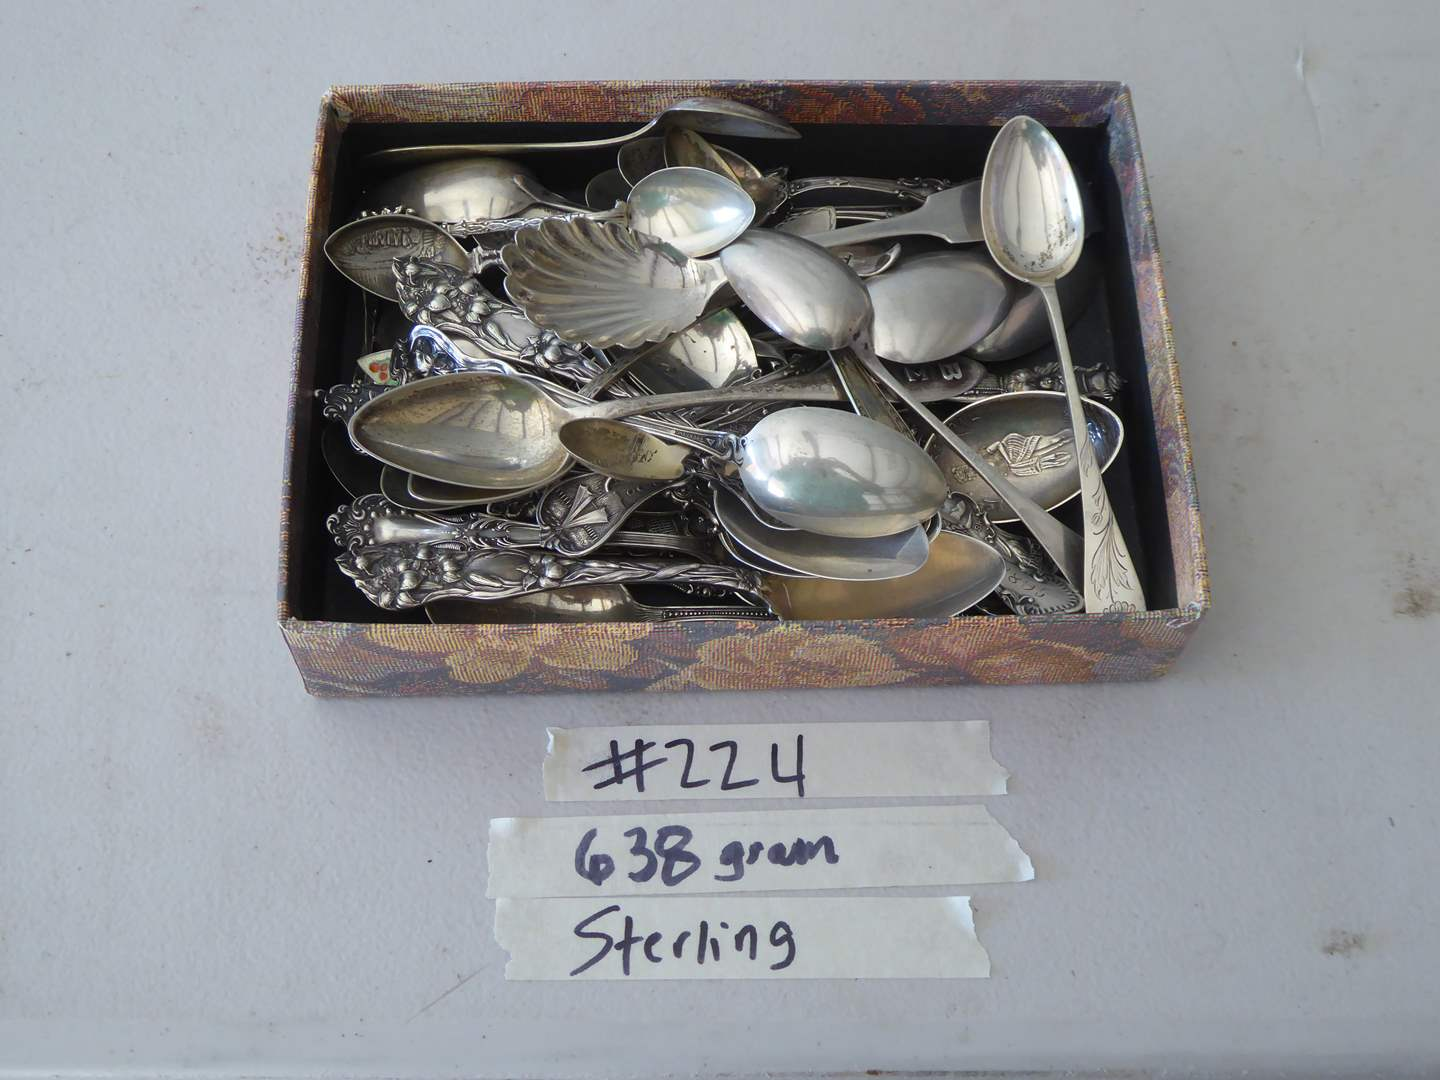 Lot # 224 - 638 Grams Sterling Silver Spoons (main image)